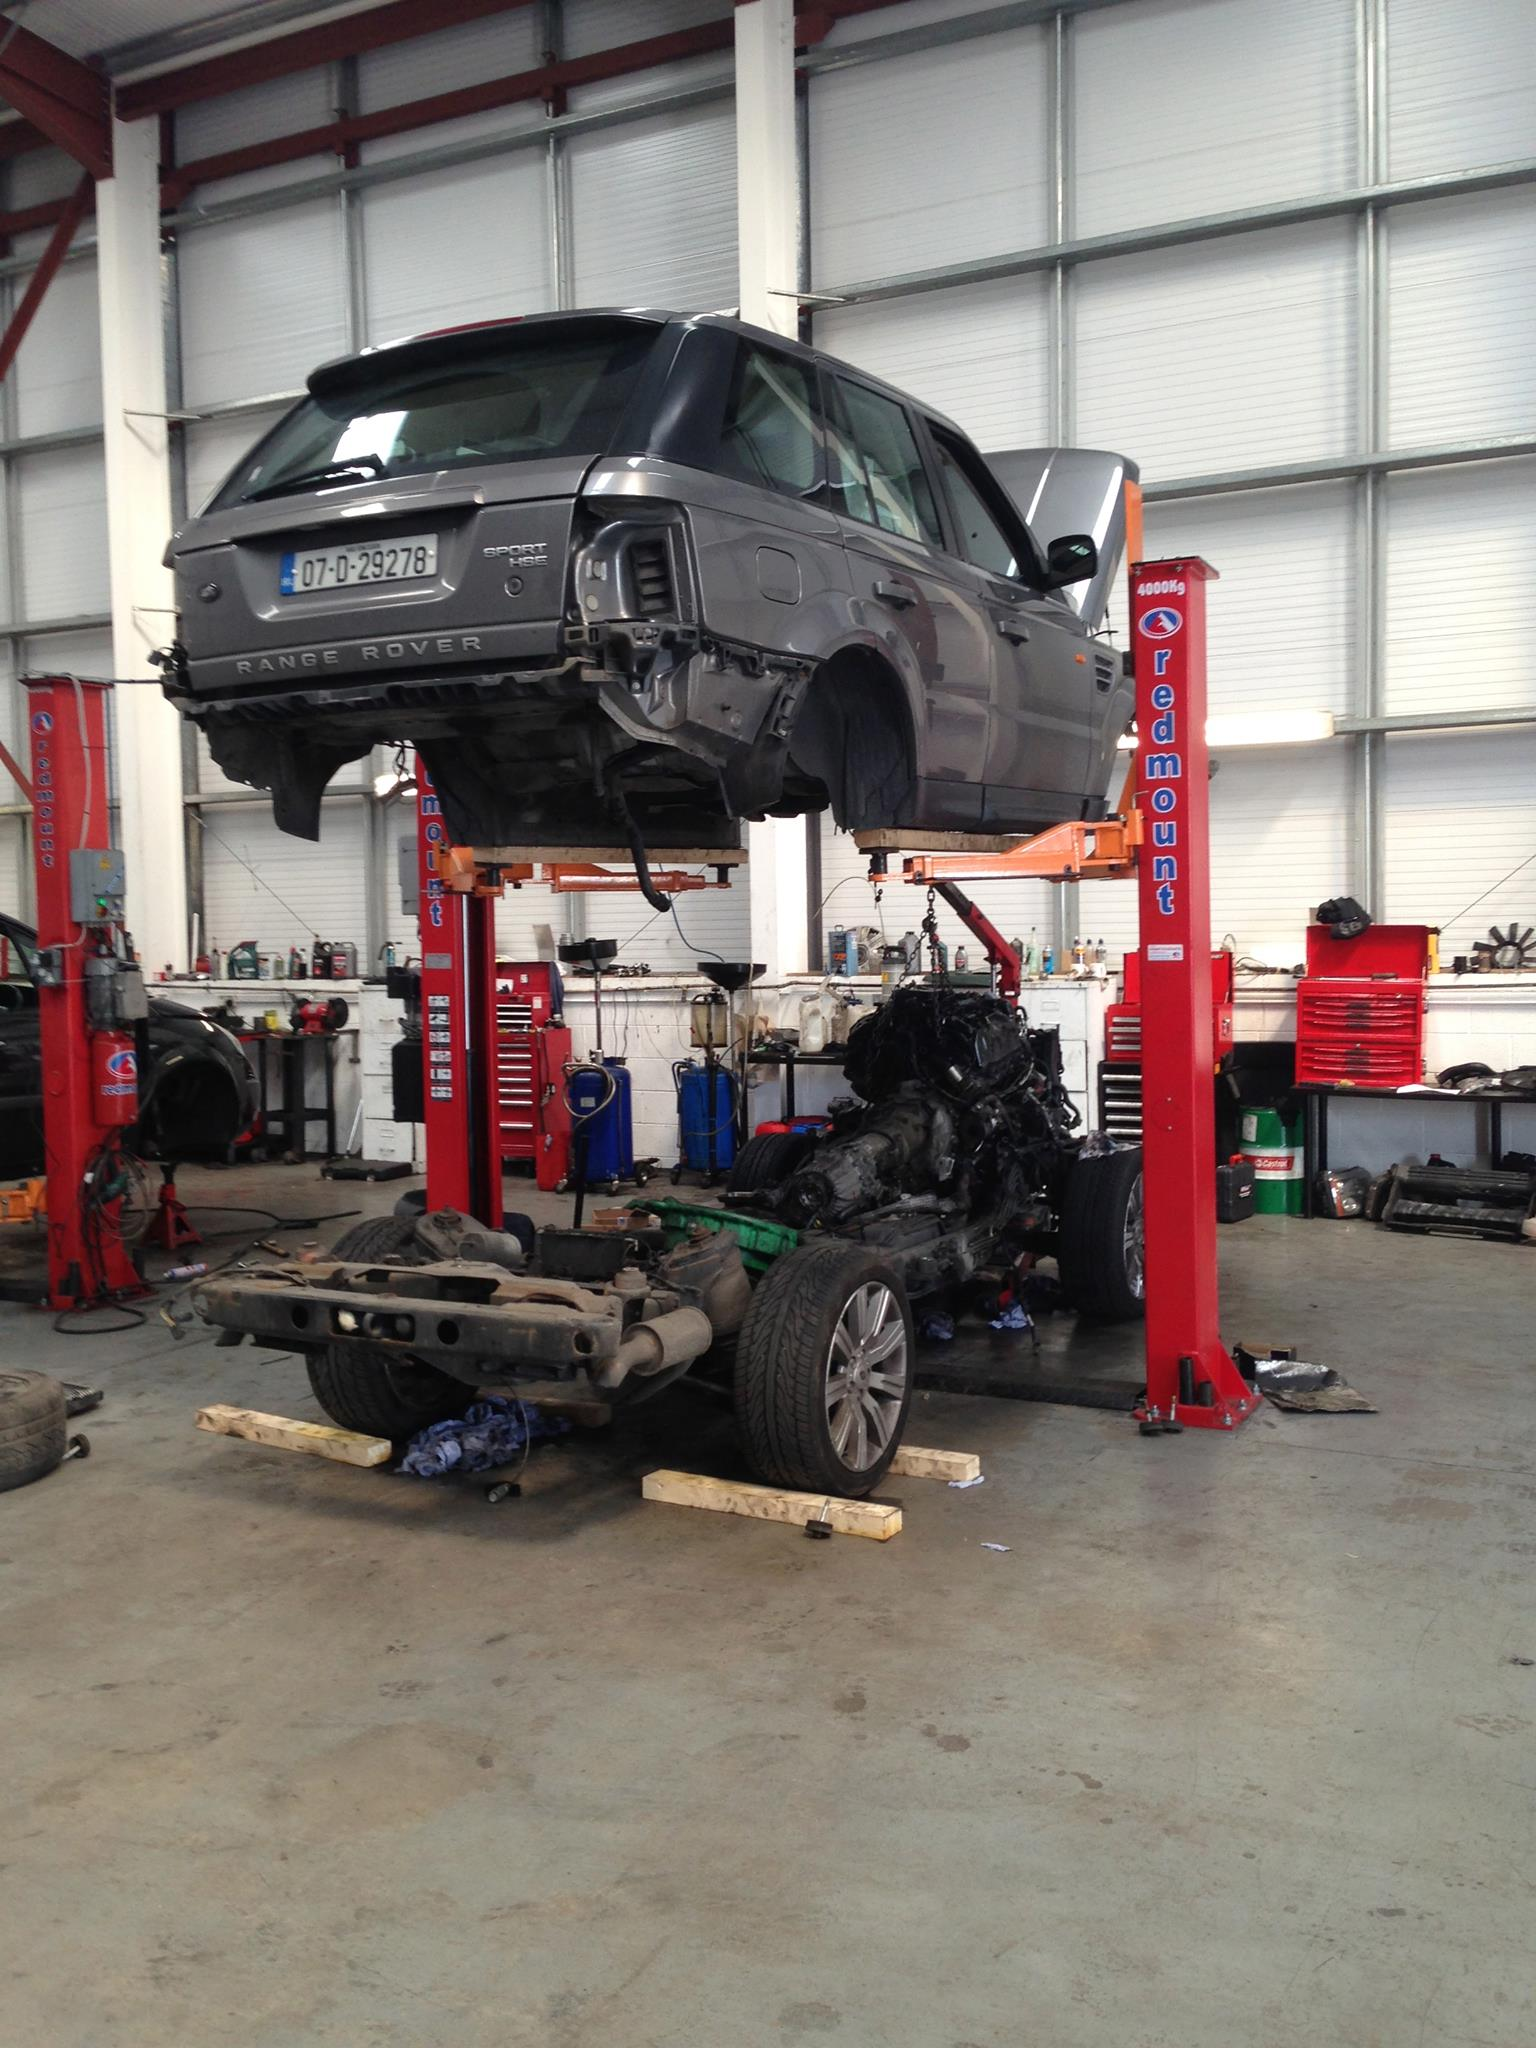 Trimtech Smart Repair Centre - Nevinstown East Maintenance